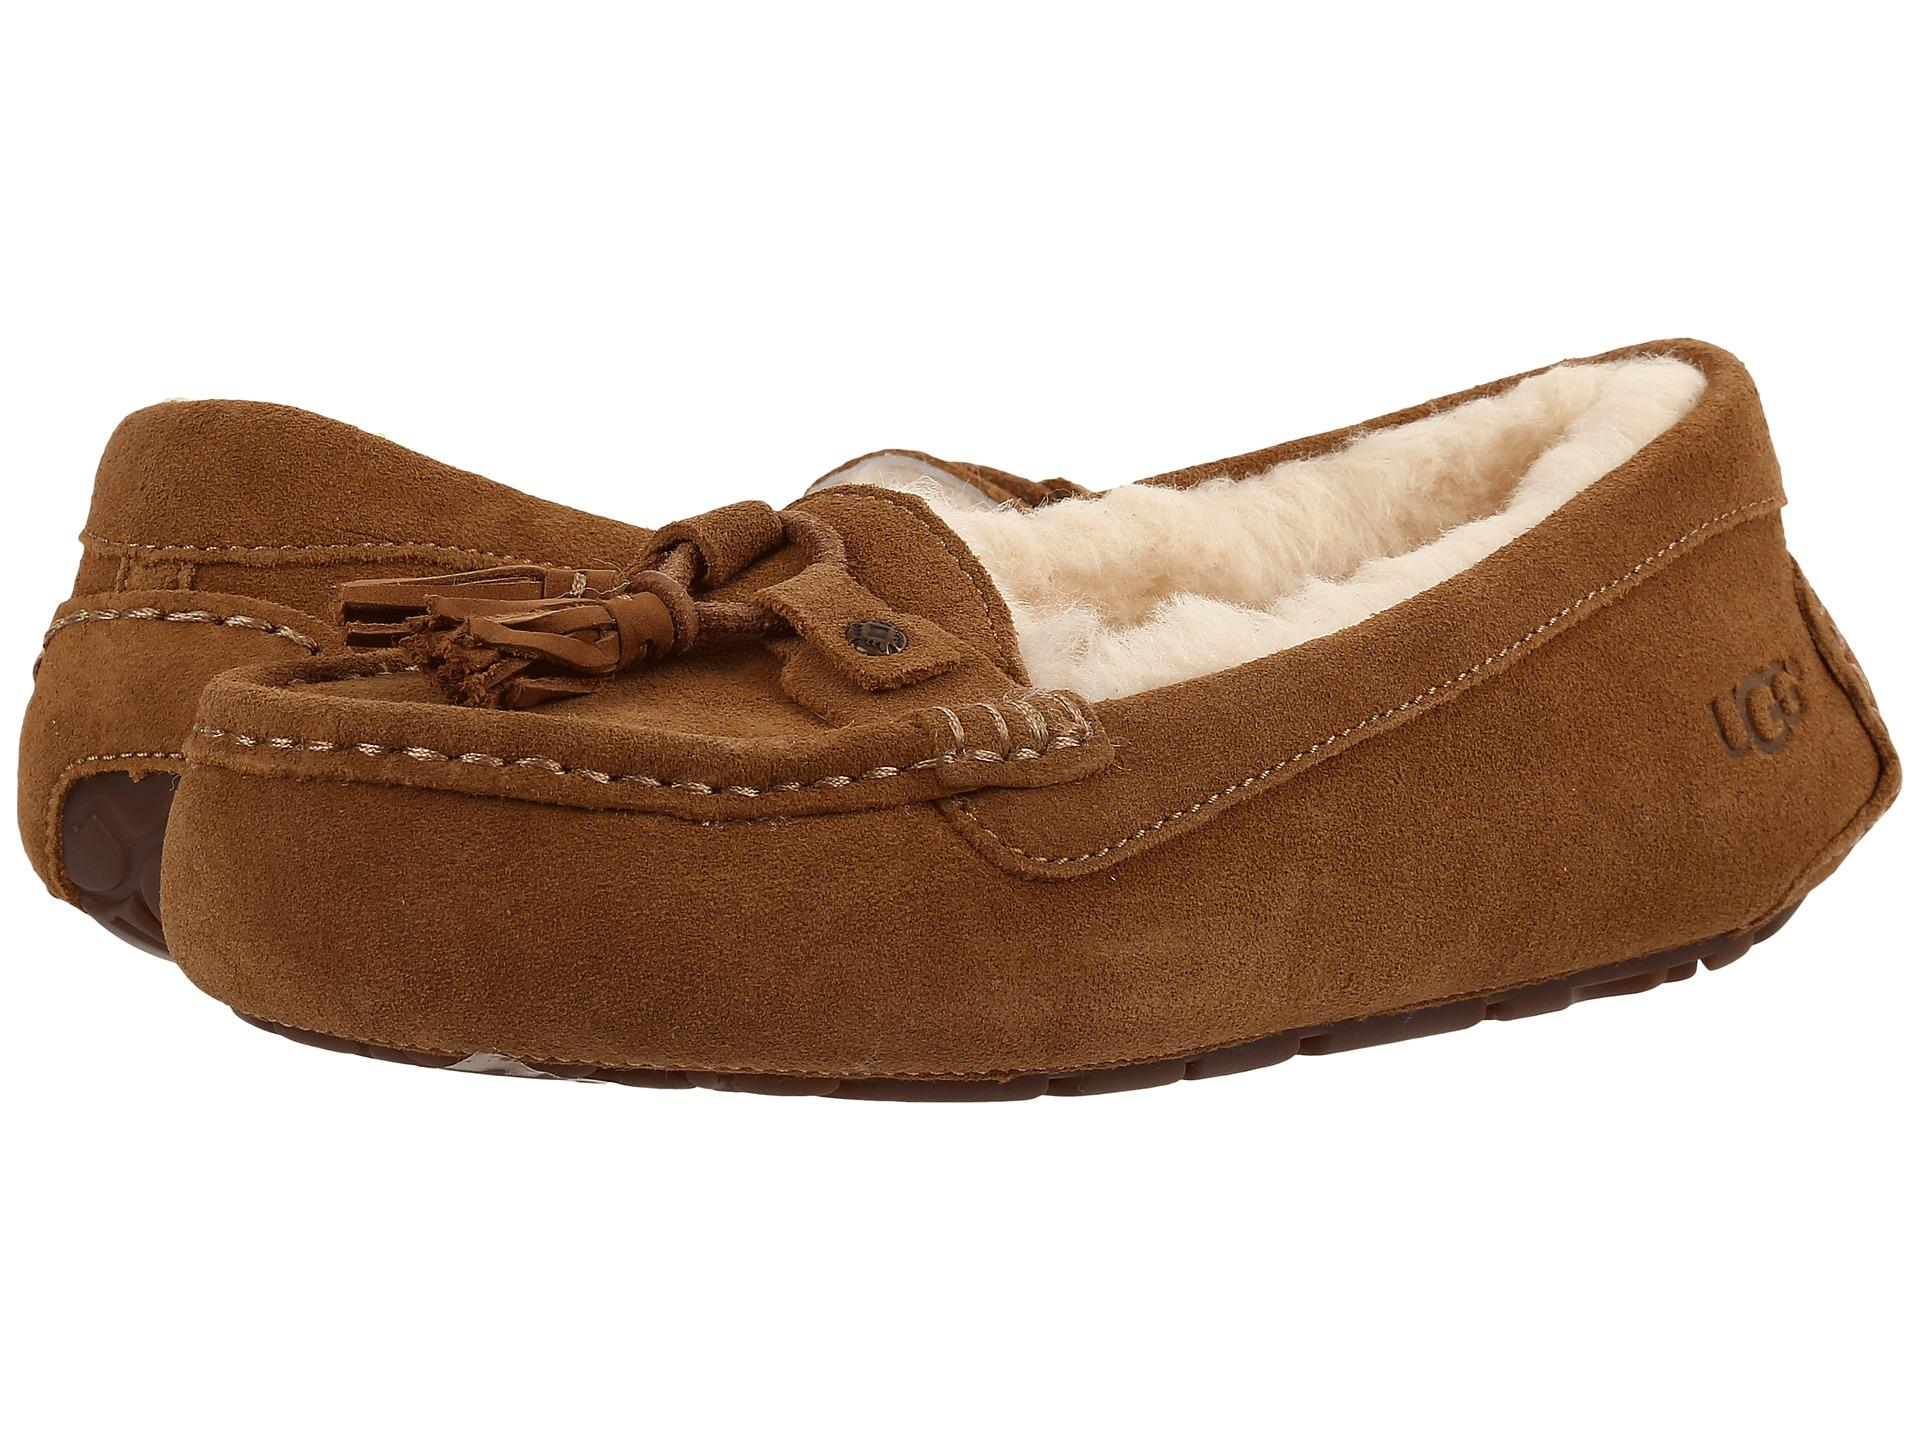 84f753eee4f Lyst - UGG Litney in Brown